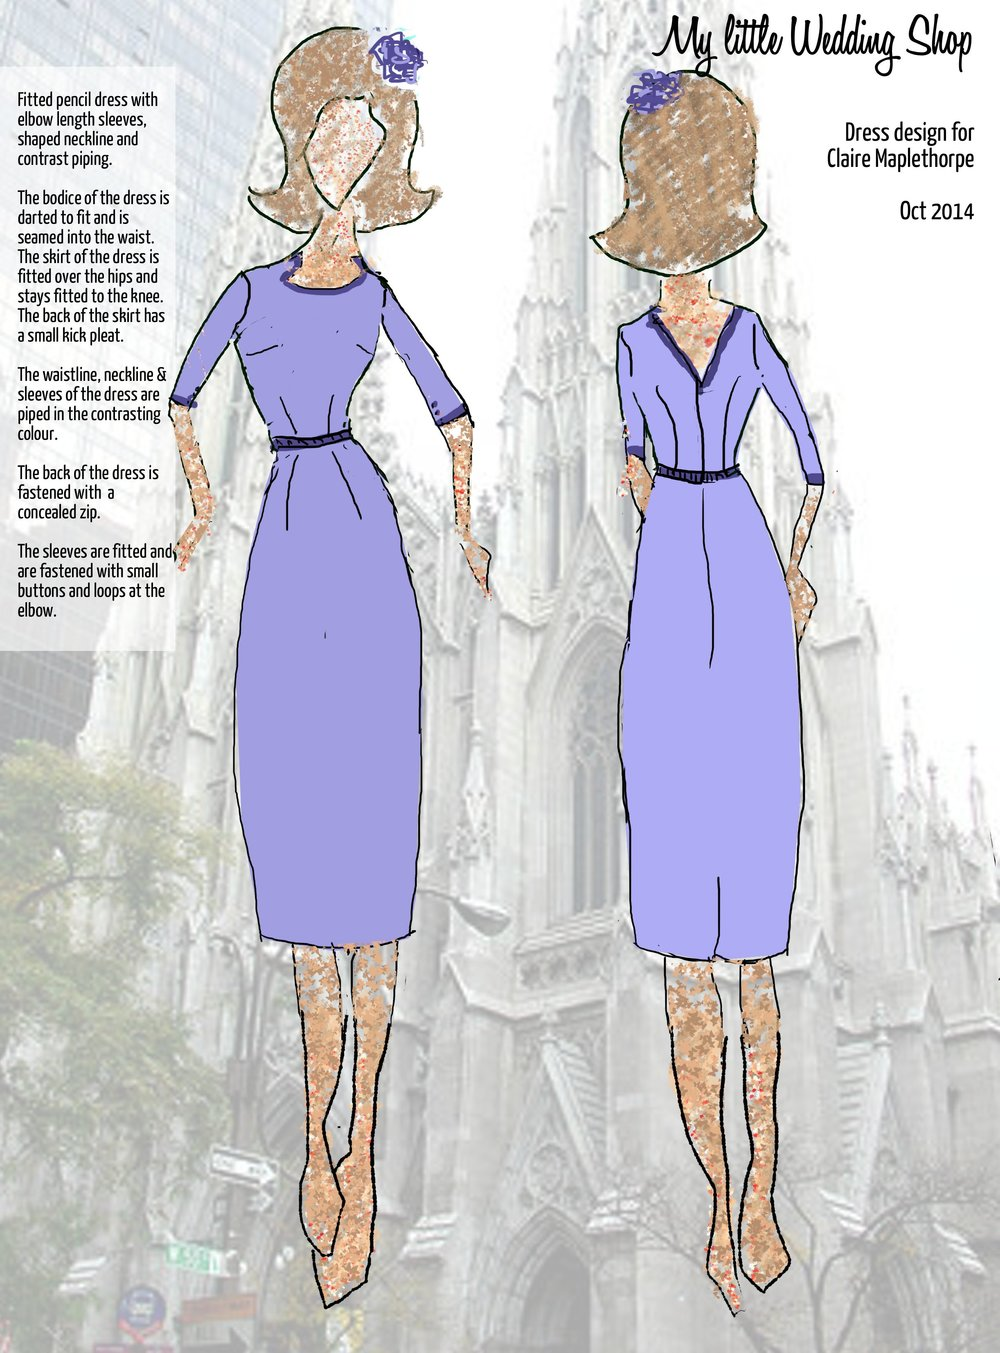 dress design Oct 2014.jpg